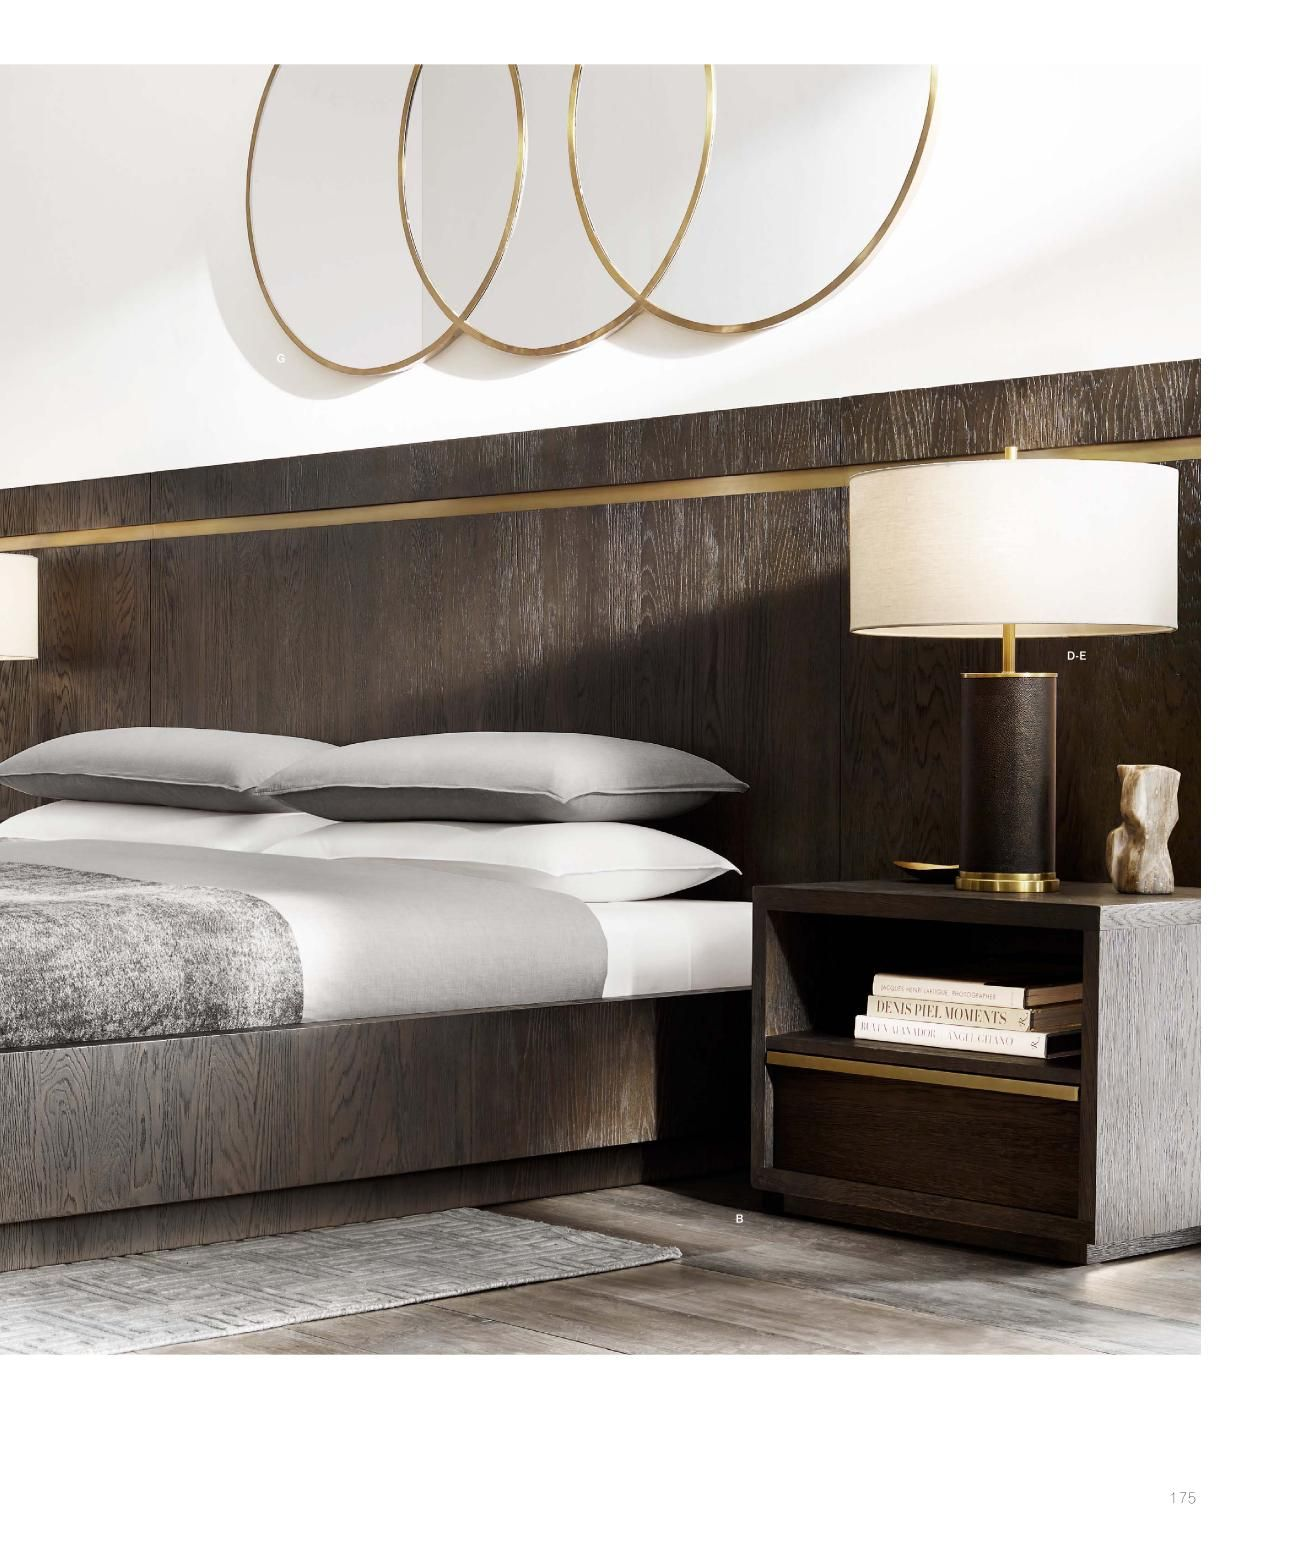 Rh Source Books Luxurious Bedrooms Modern Bedroom Bed